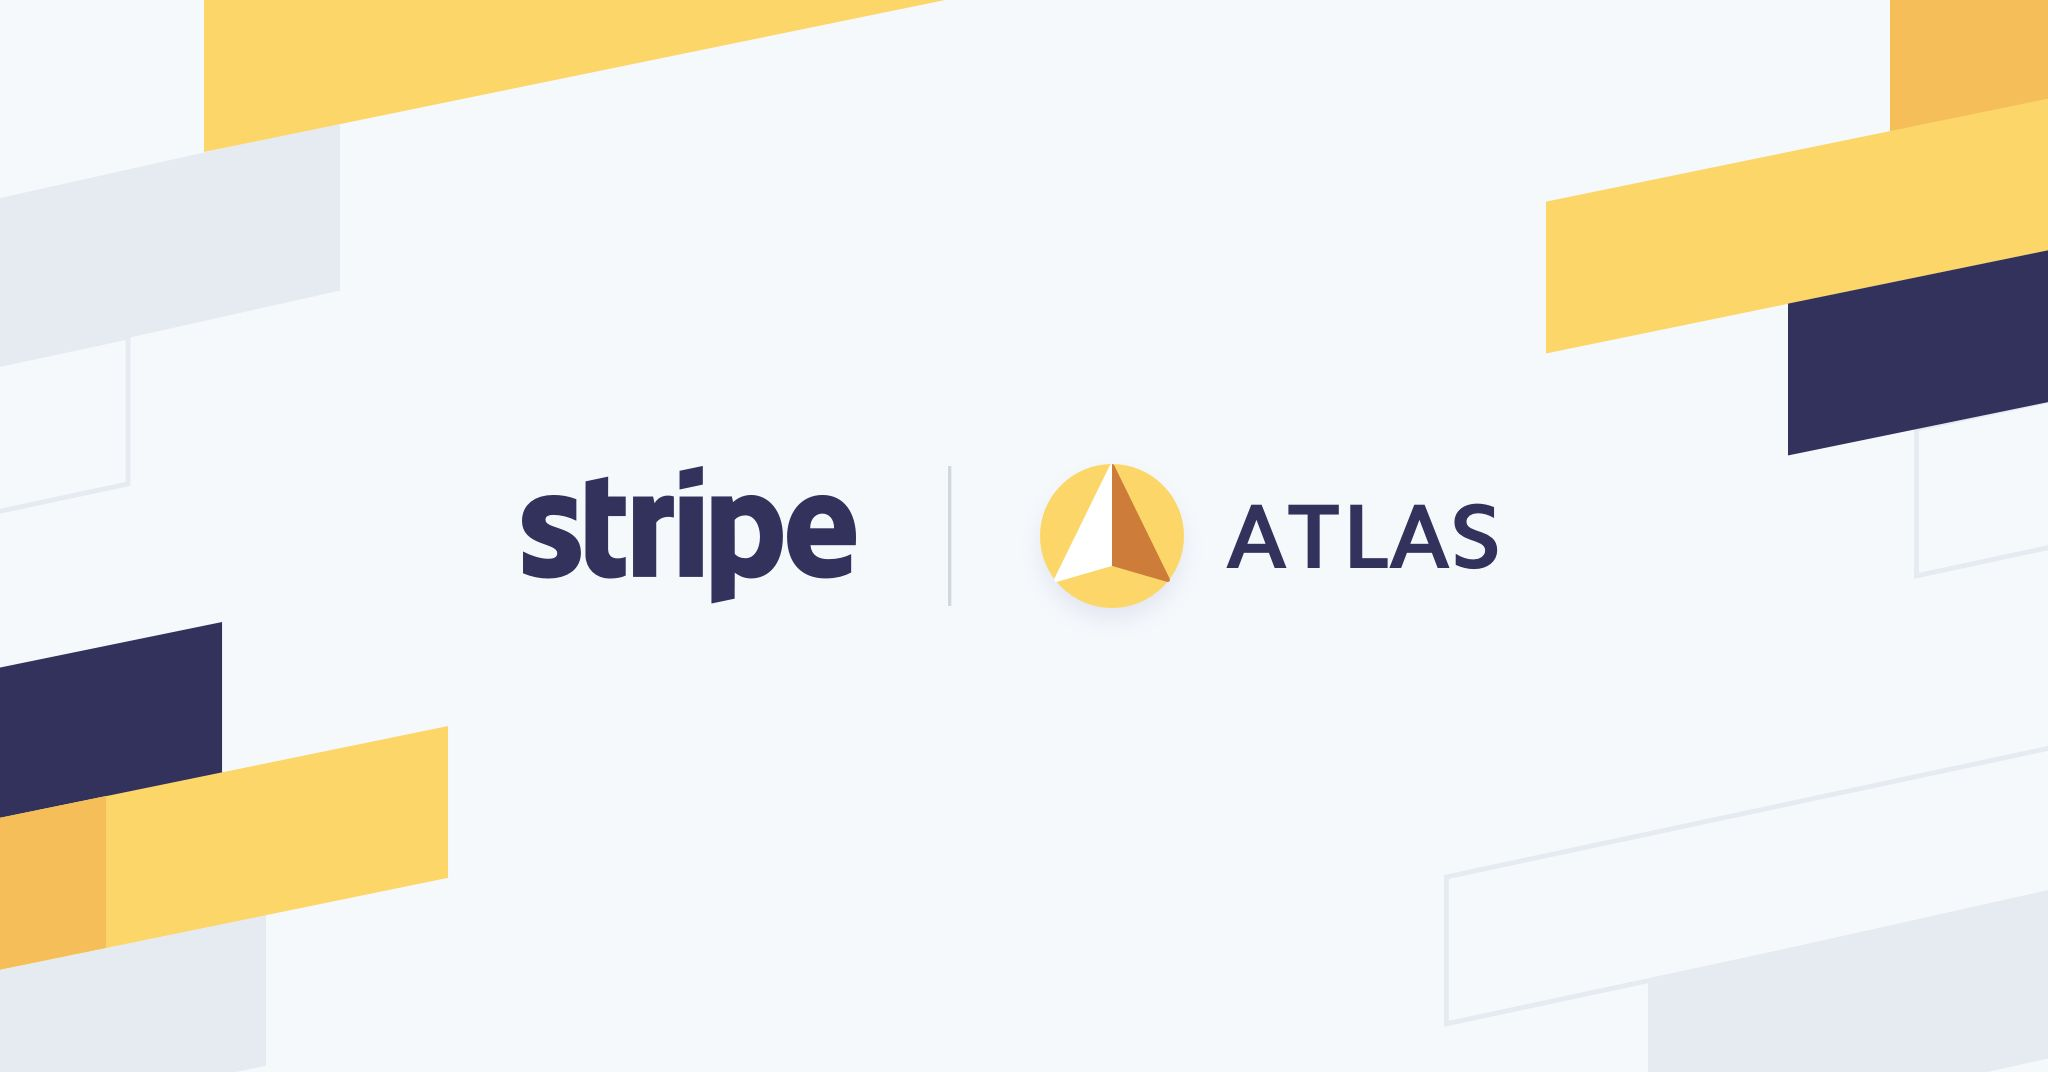 /our-experience-with-stripe-atlas-fcccafe6fff8 feature image